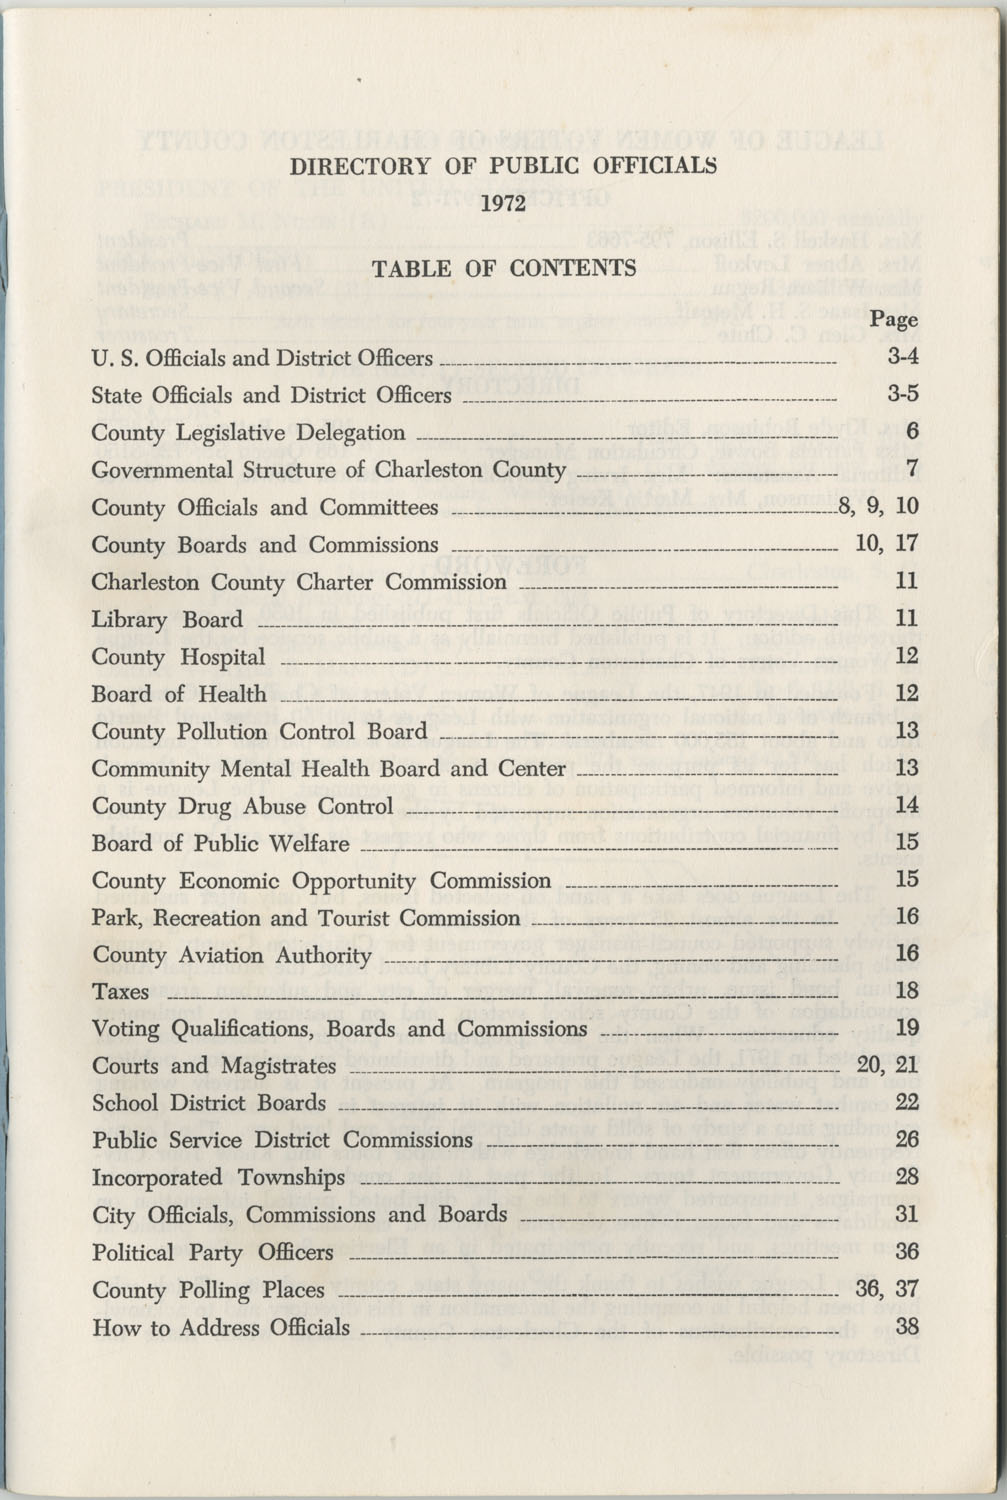 Directory of Public Officials, 1972-1973, Page 1